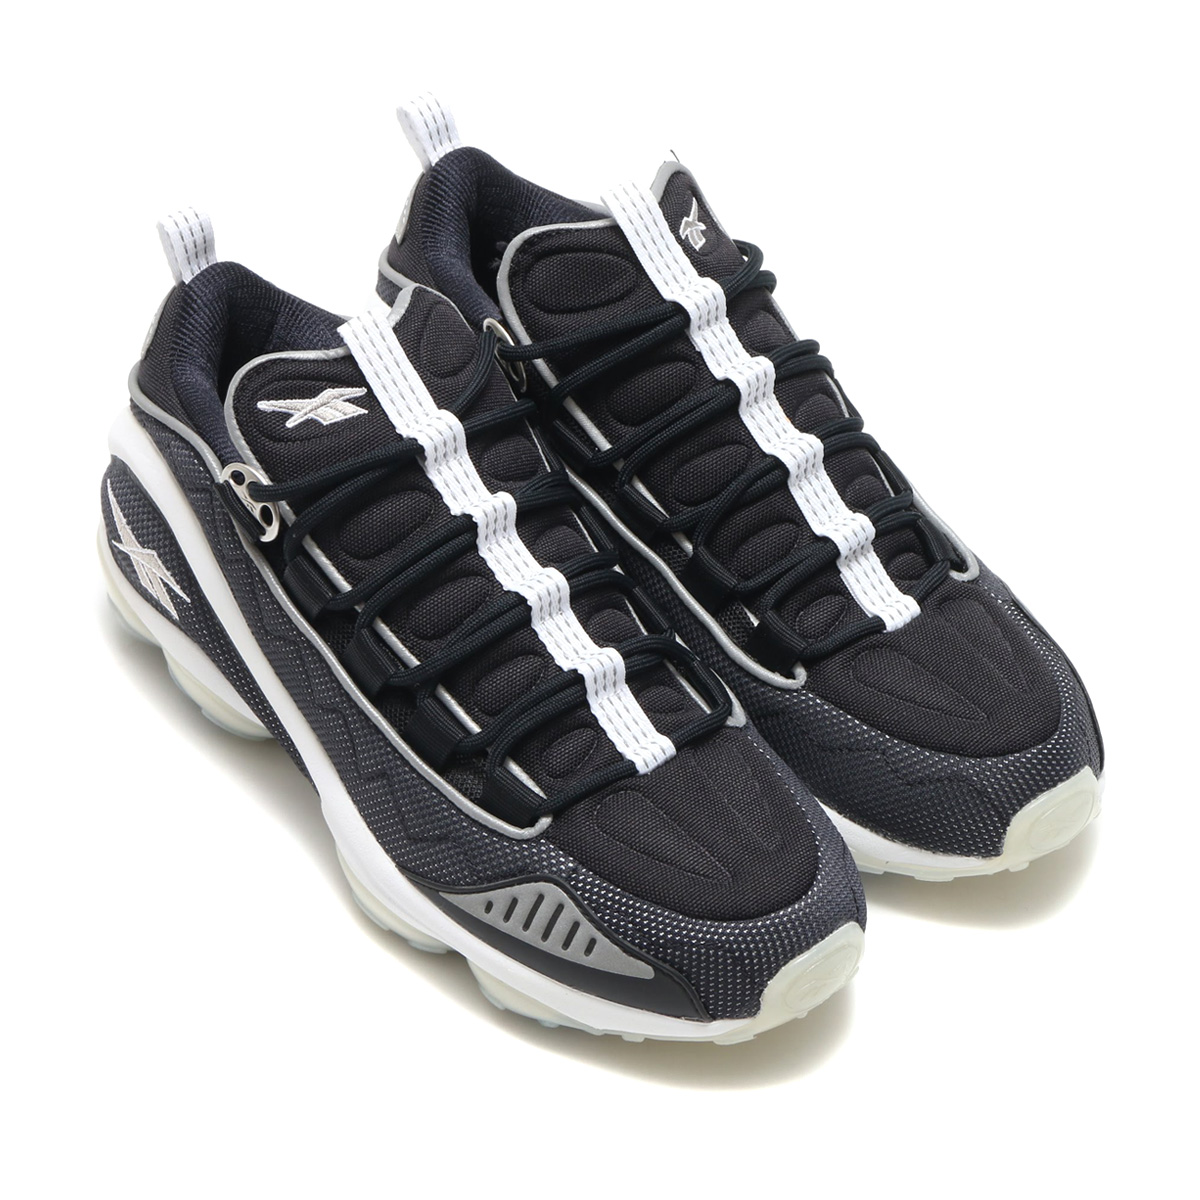 51f7c281399 Reebok CLASSIC (Reebok classical music) sneakers. DMX RUN 10 which appeared  in 1997